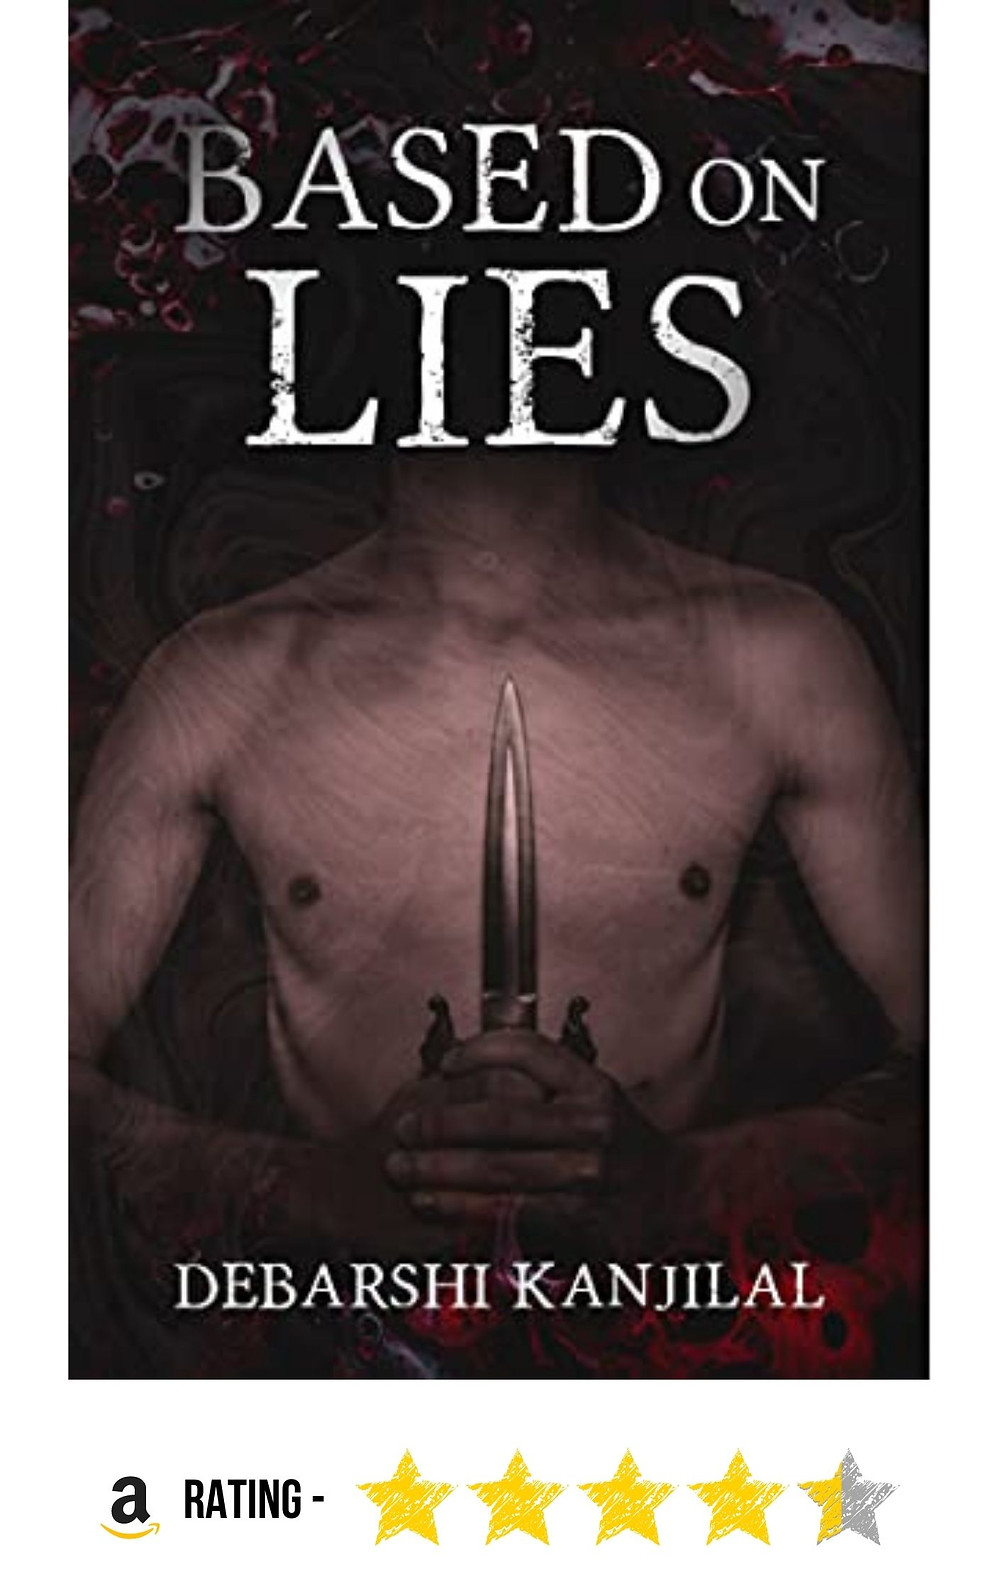 Amazon purchase link to the horror mystery 'Based on Lies', by Debarshi Kanjilal